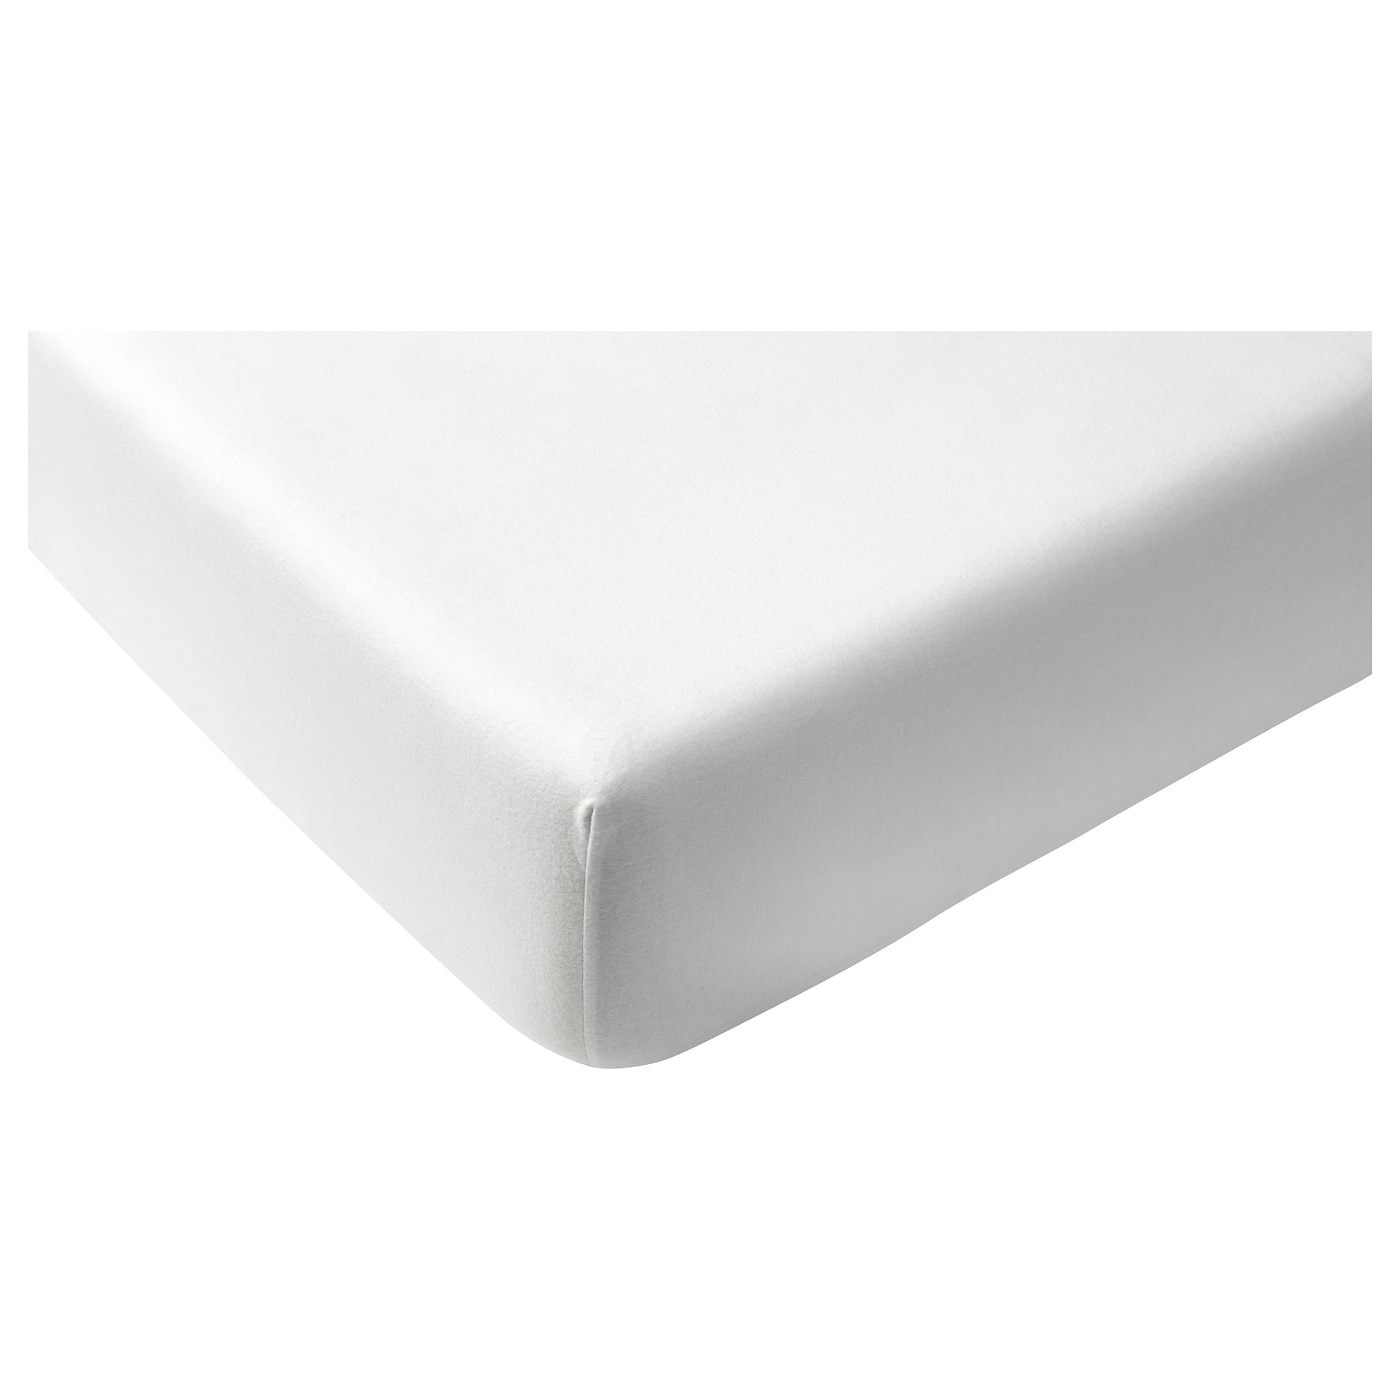 IKEA NORDRUTA fitted sheet Cotton, feels soft and nice against your skin.